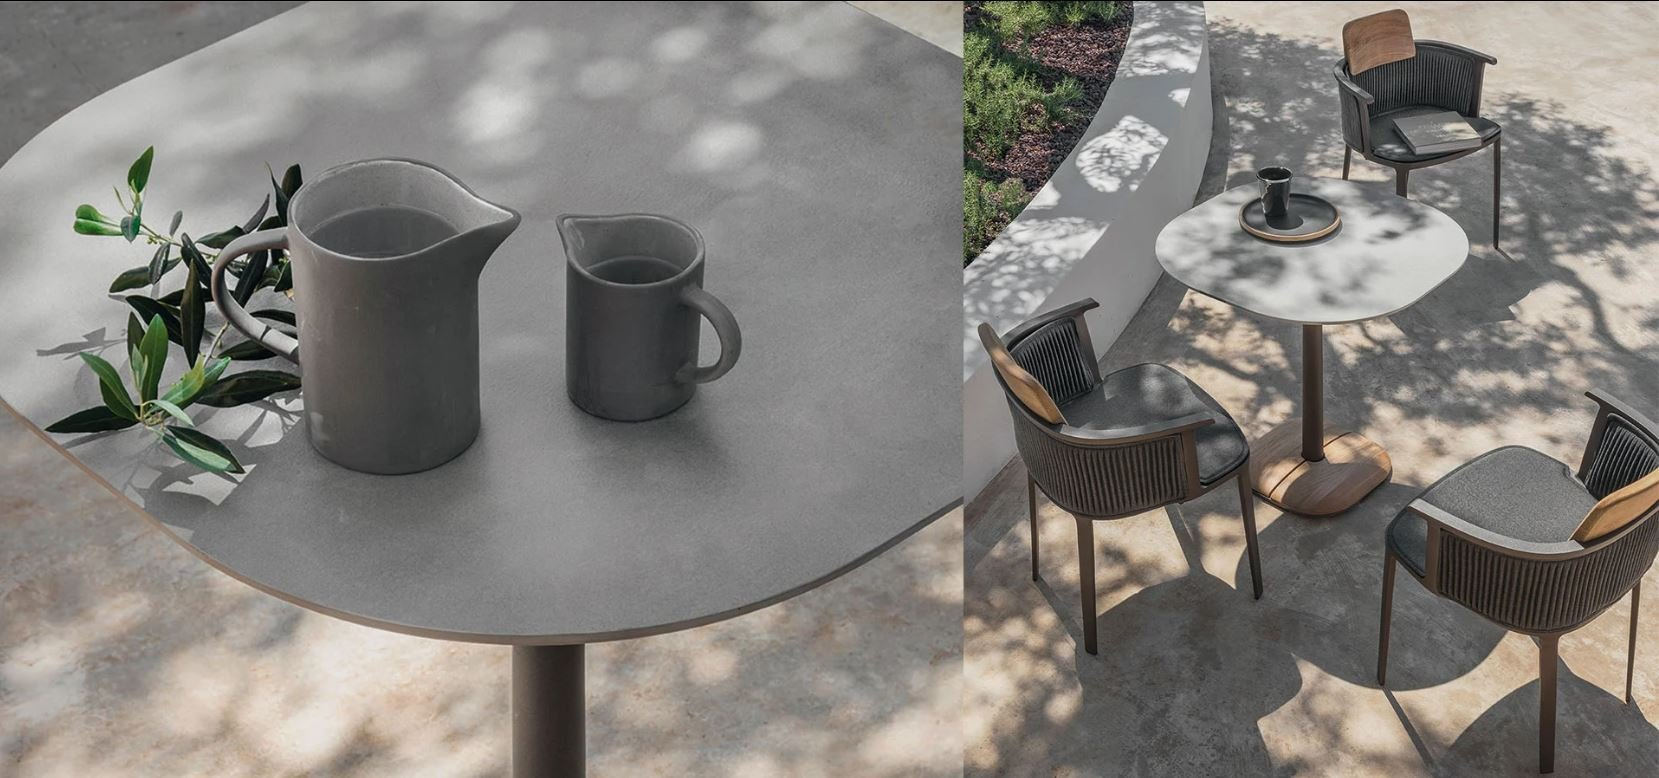 Enjoy Dining Table from Ethimo, designed by Ethimo Studio